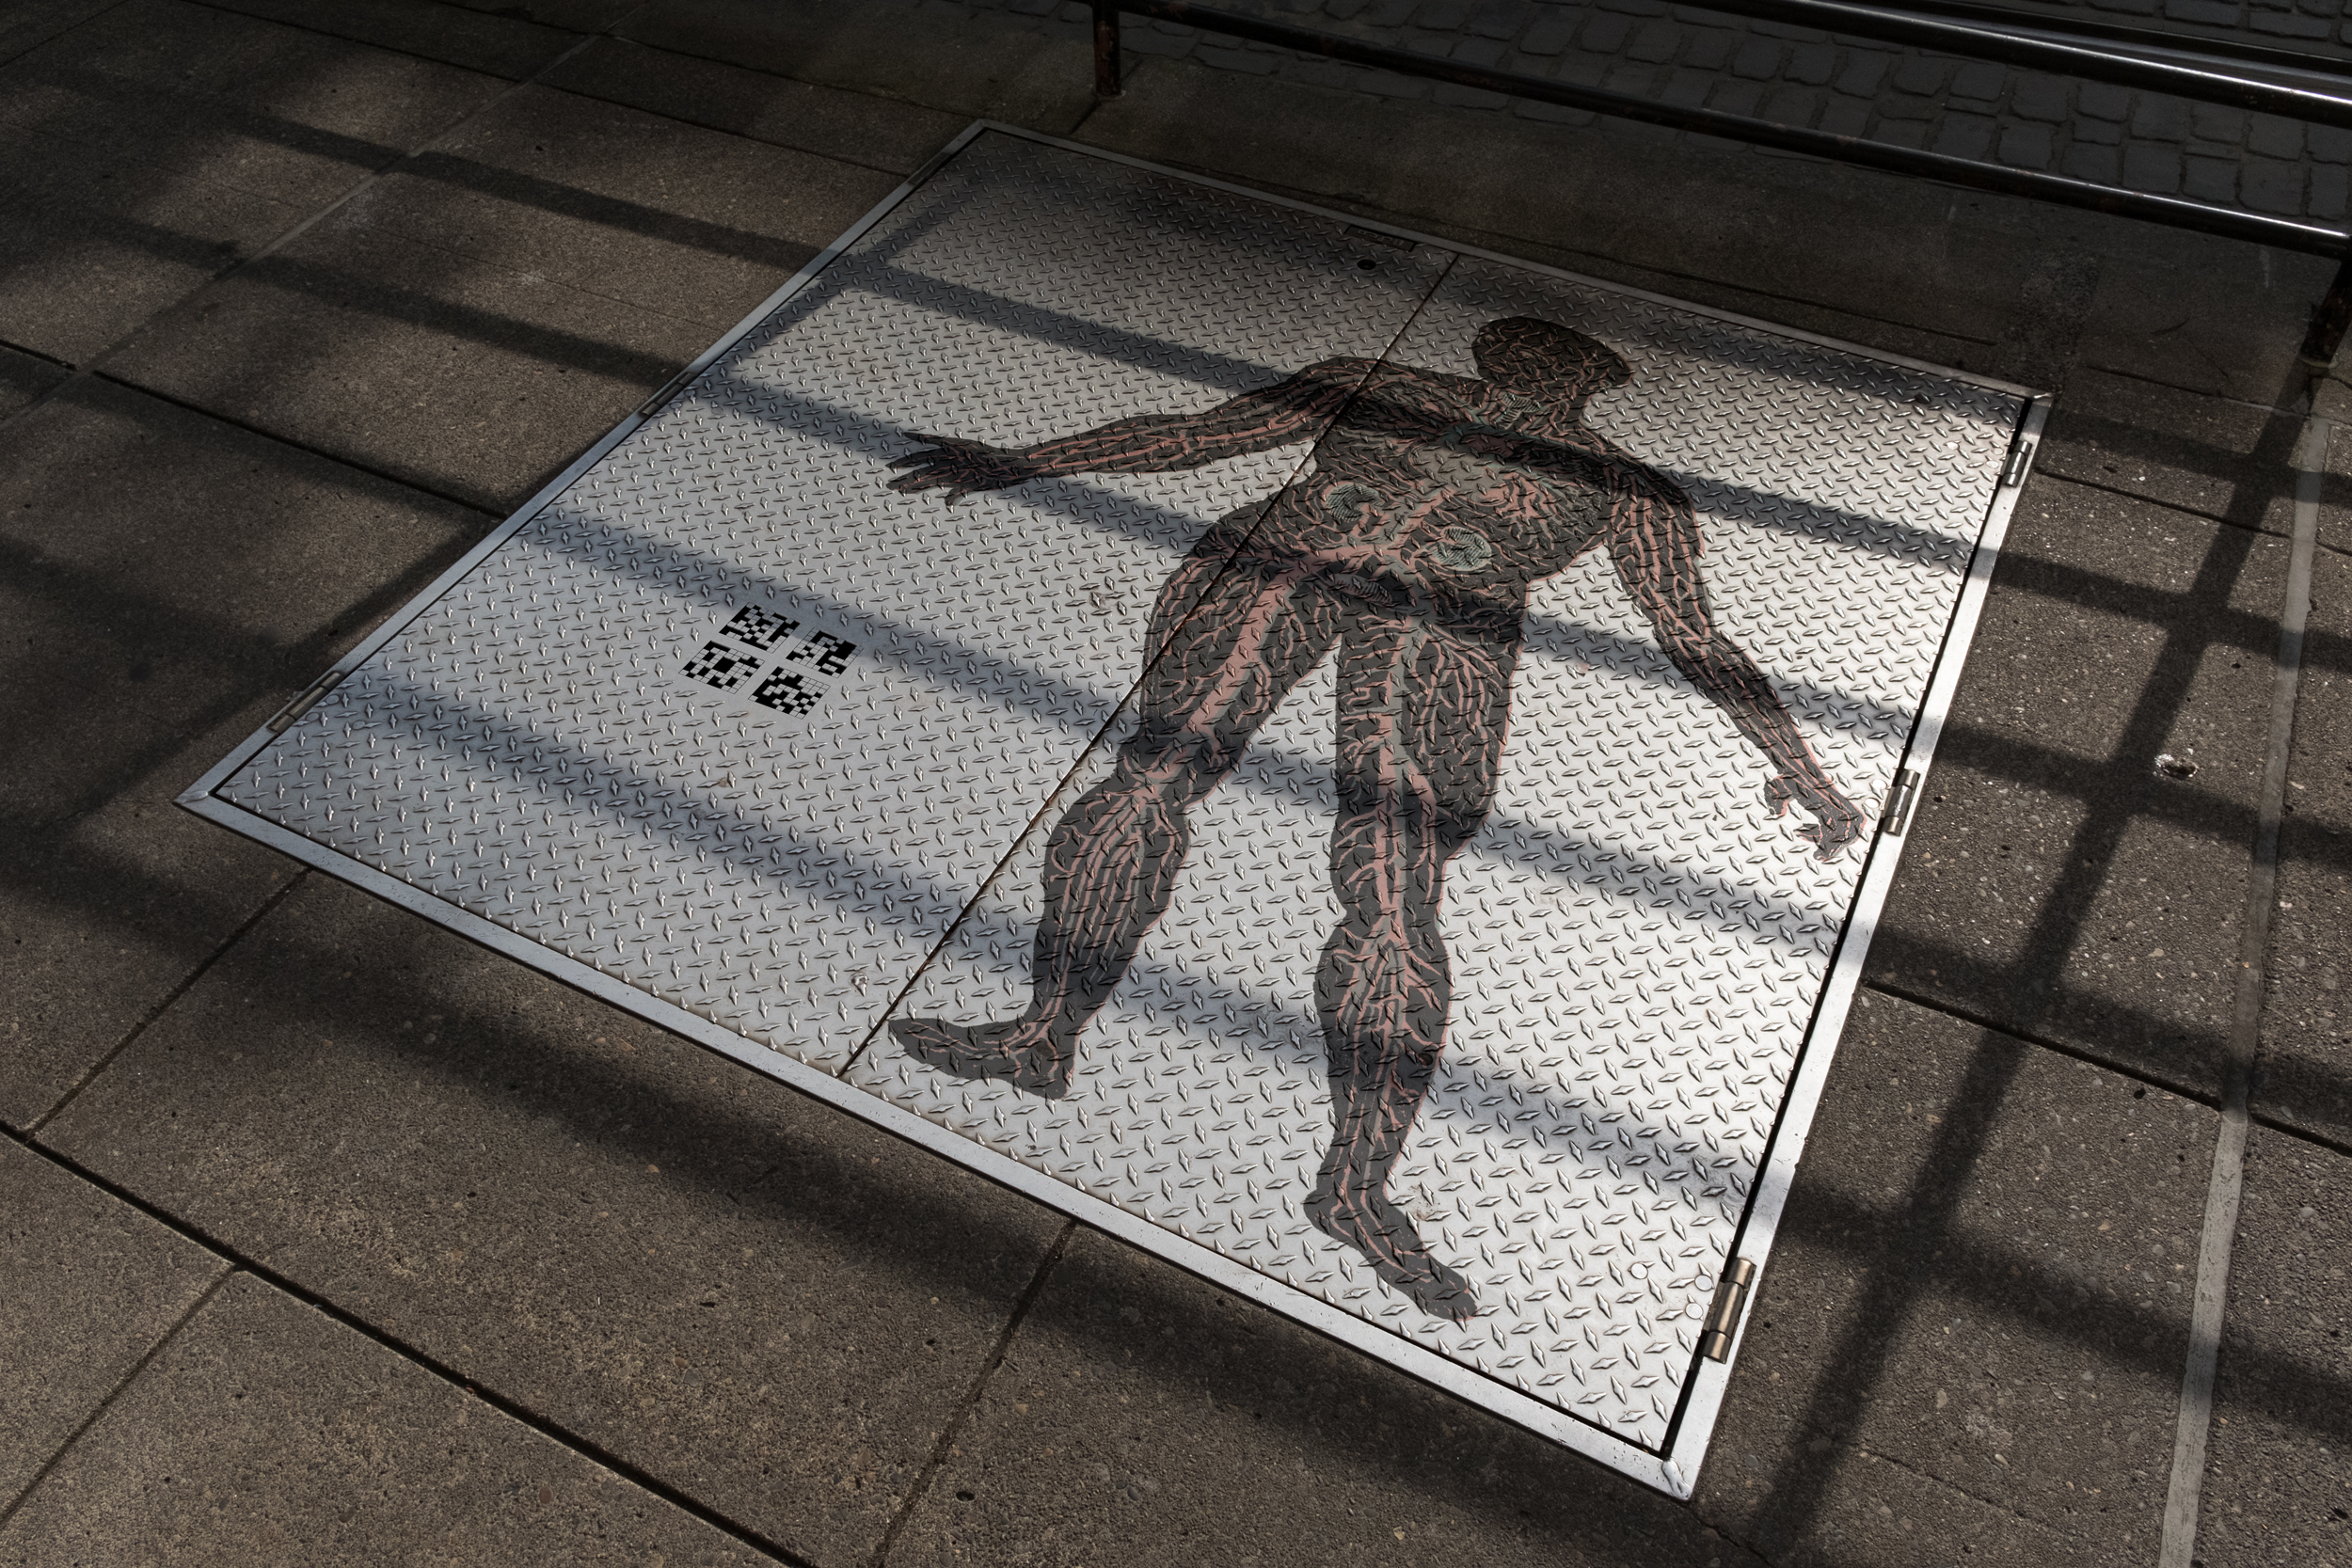 Metal Plate on Sidewalk with Leg copy.jpg